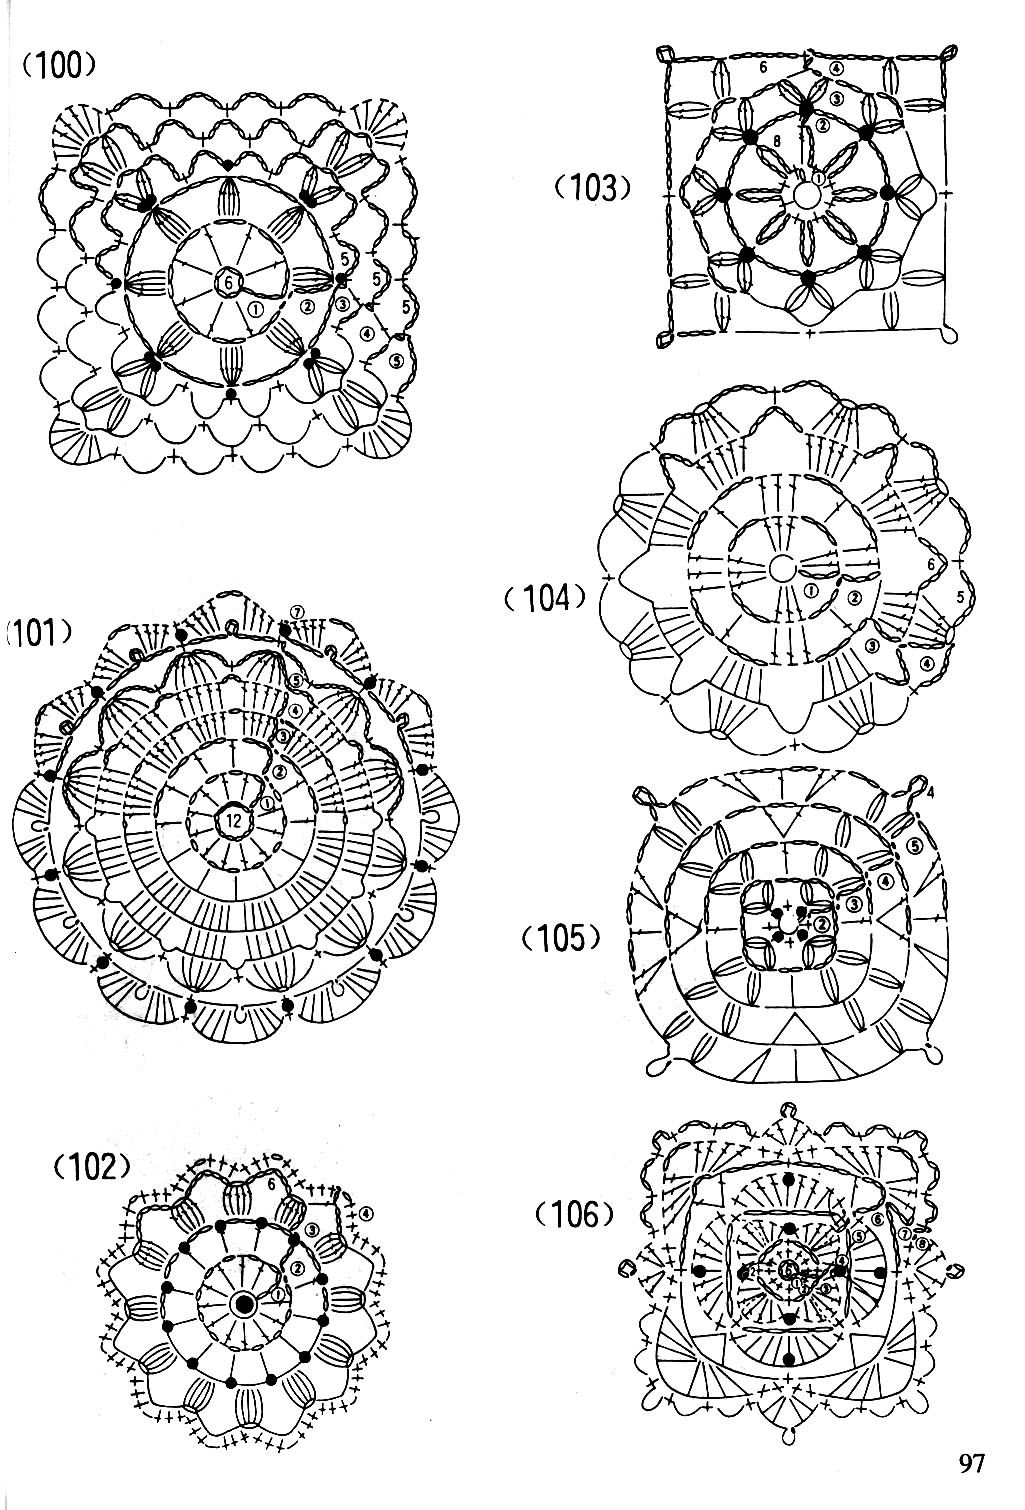 Motif diagrams crochet pinterest crochet crochet motif and crochet diagram bankloansurffo Image collections